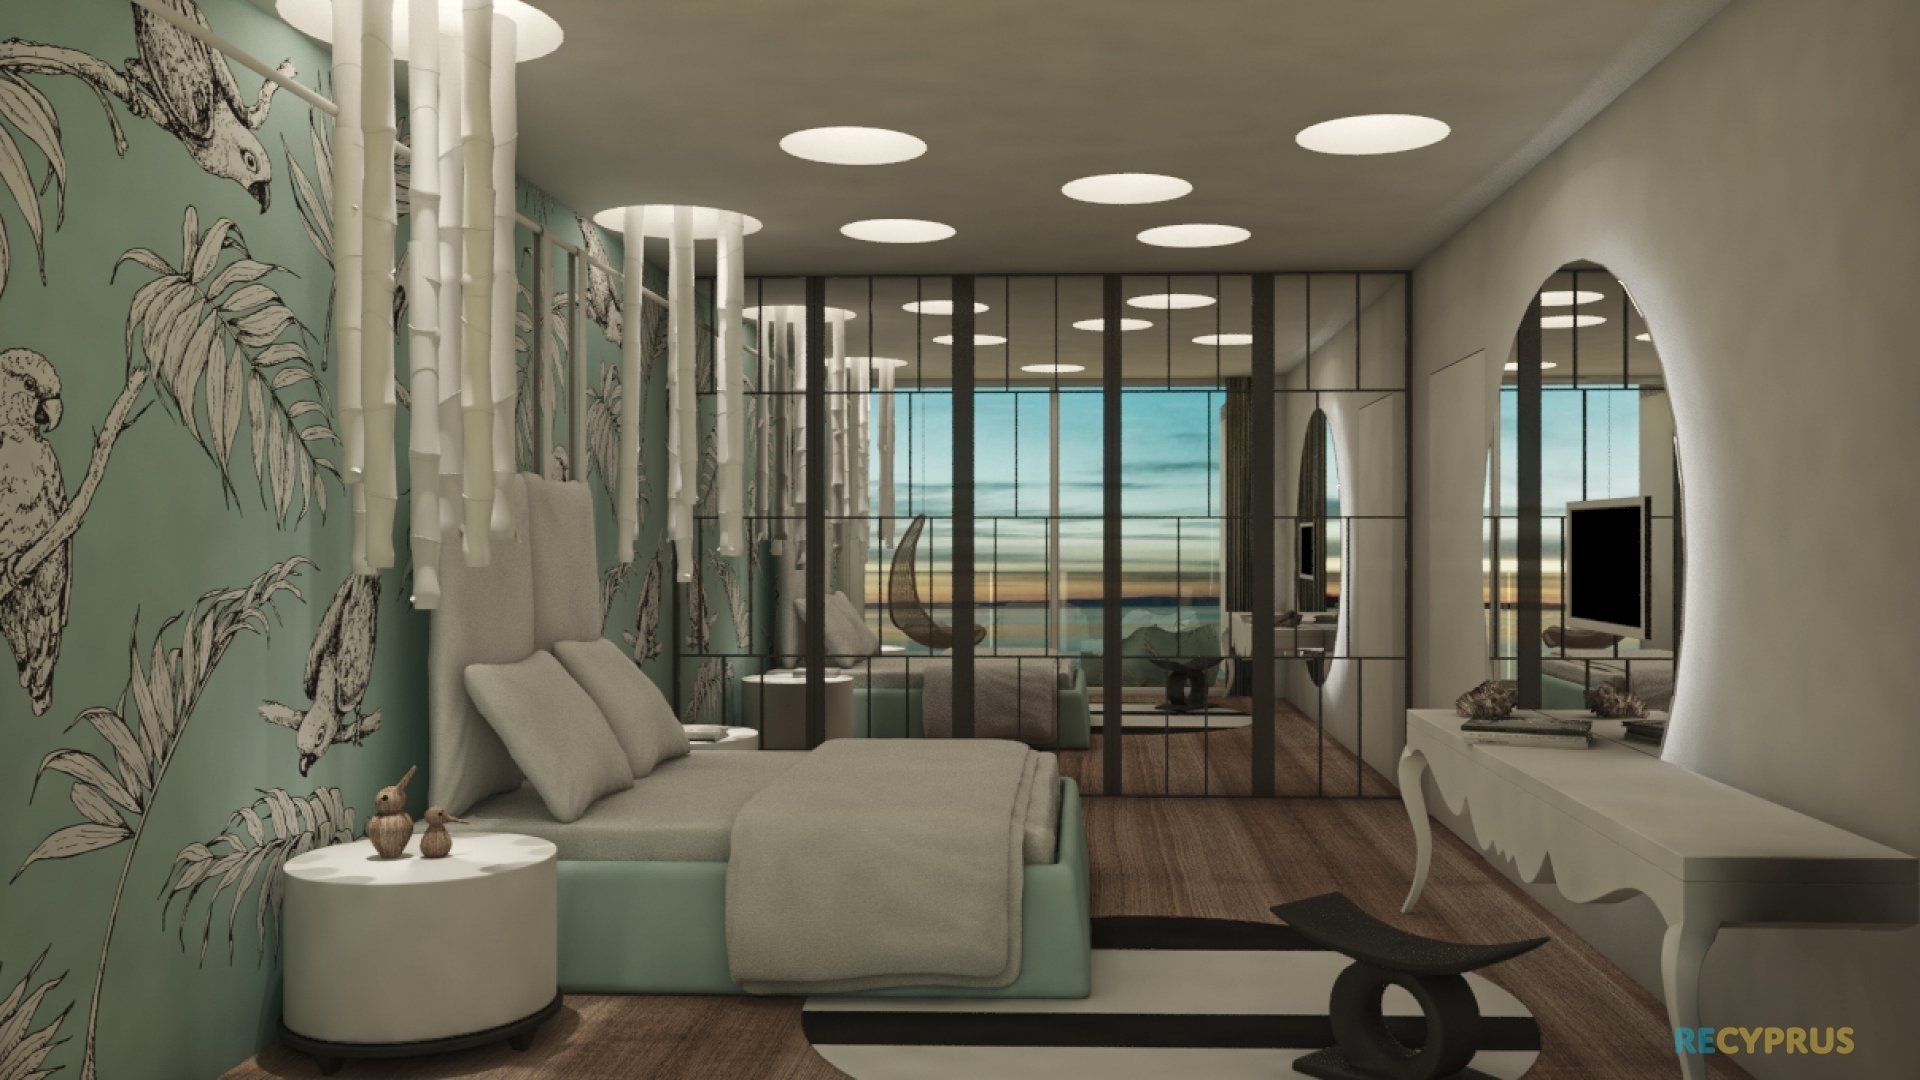 Apartment for sale Ayia Thekla Famagusta Cyprus 10 3450